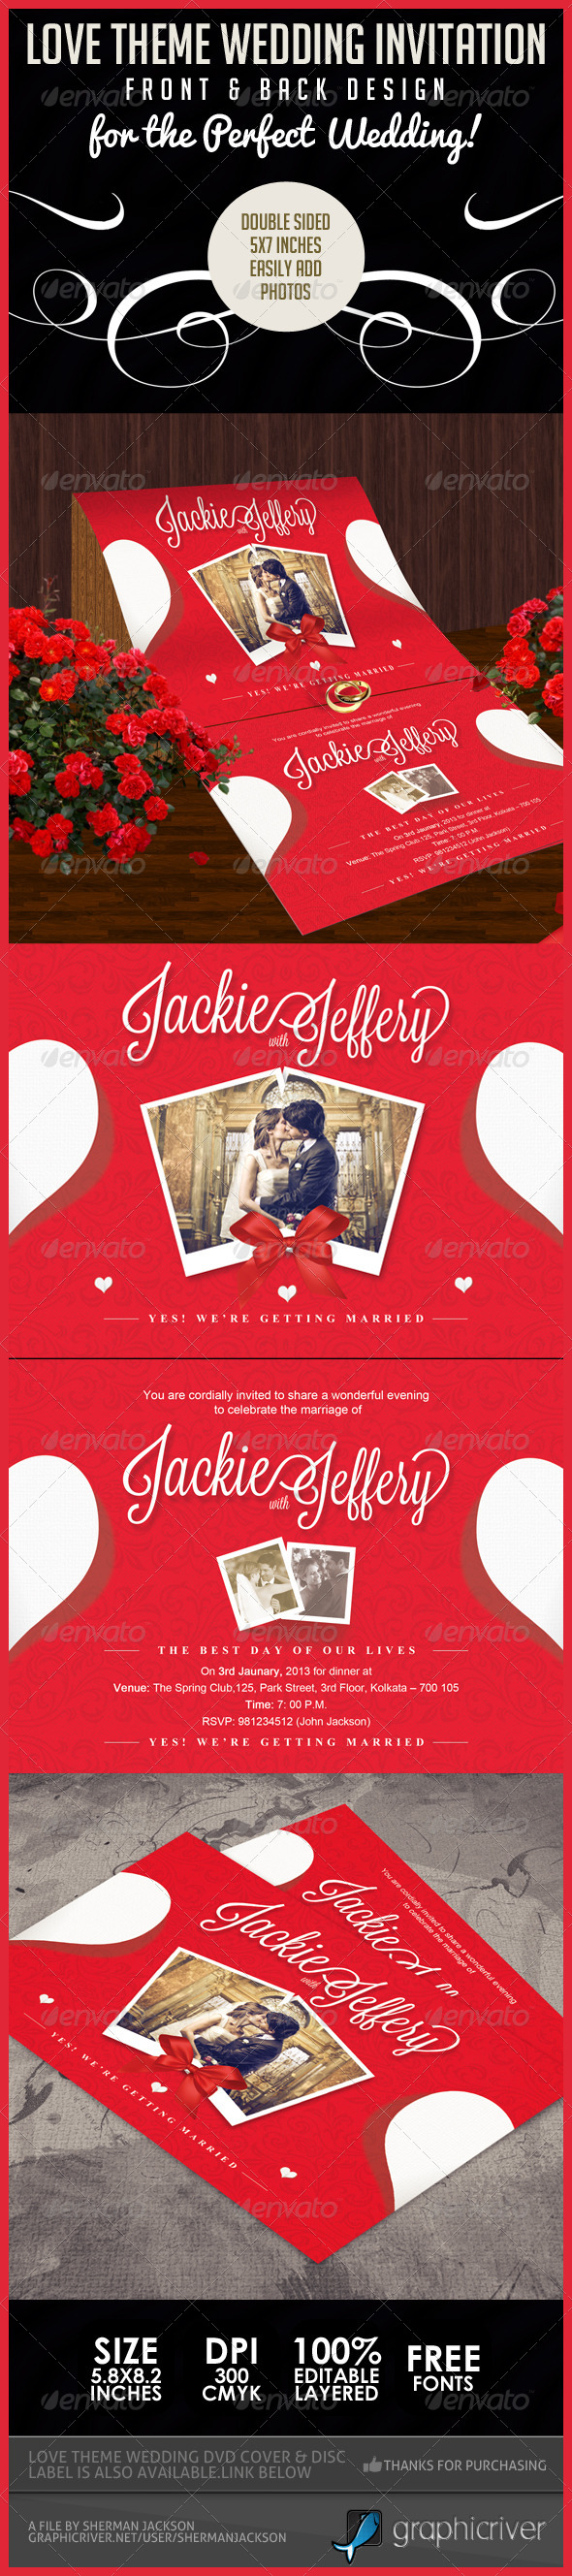 Love Theme Wedding Invitation Card